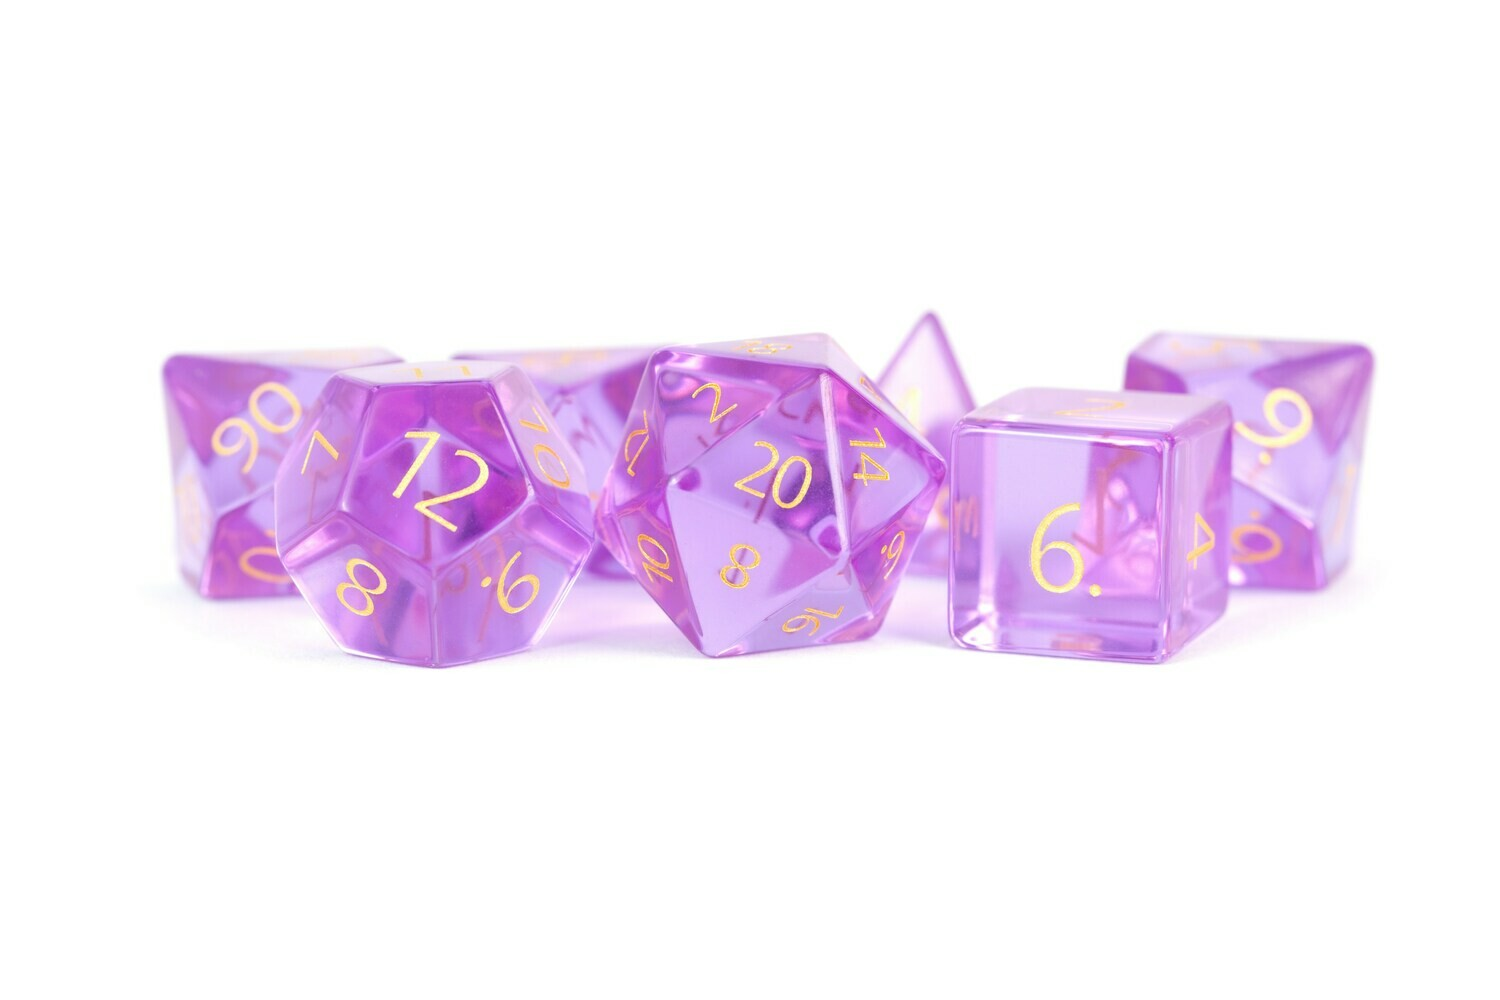 Zircon Glass Birthstone Dice: February Amethyst Tabletop RPG Gaming Games